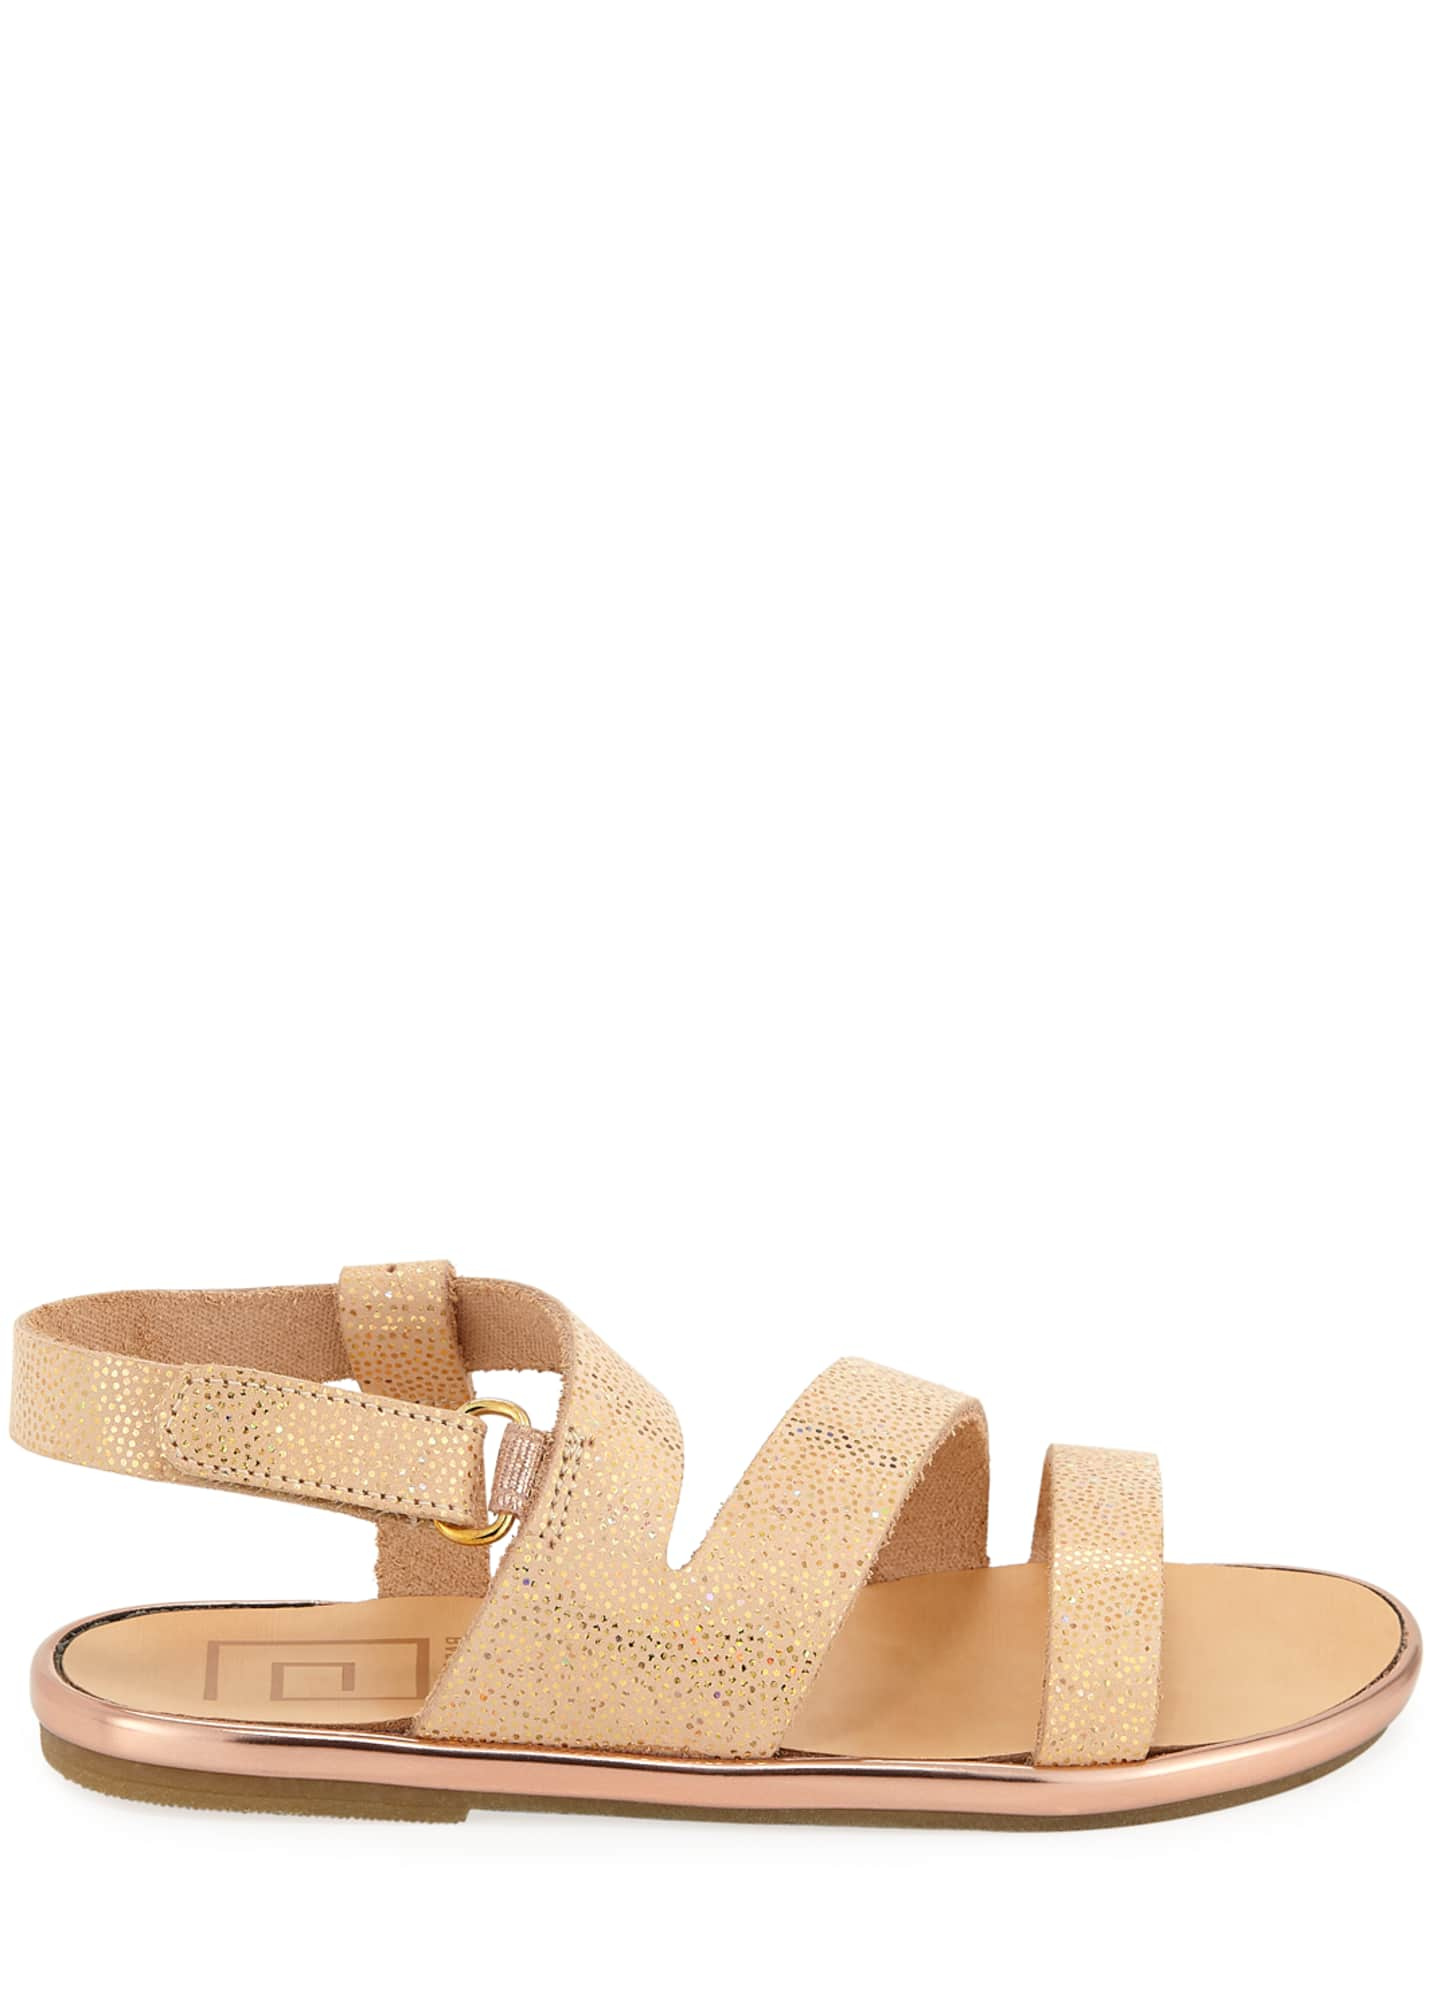 Image 2 of 3: Metallic Leather Sandal, Toddler